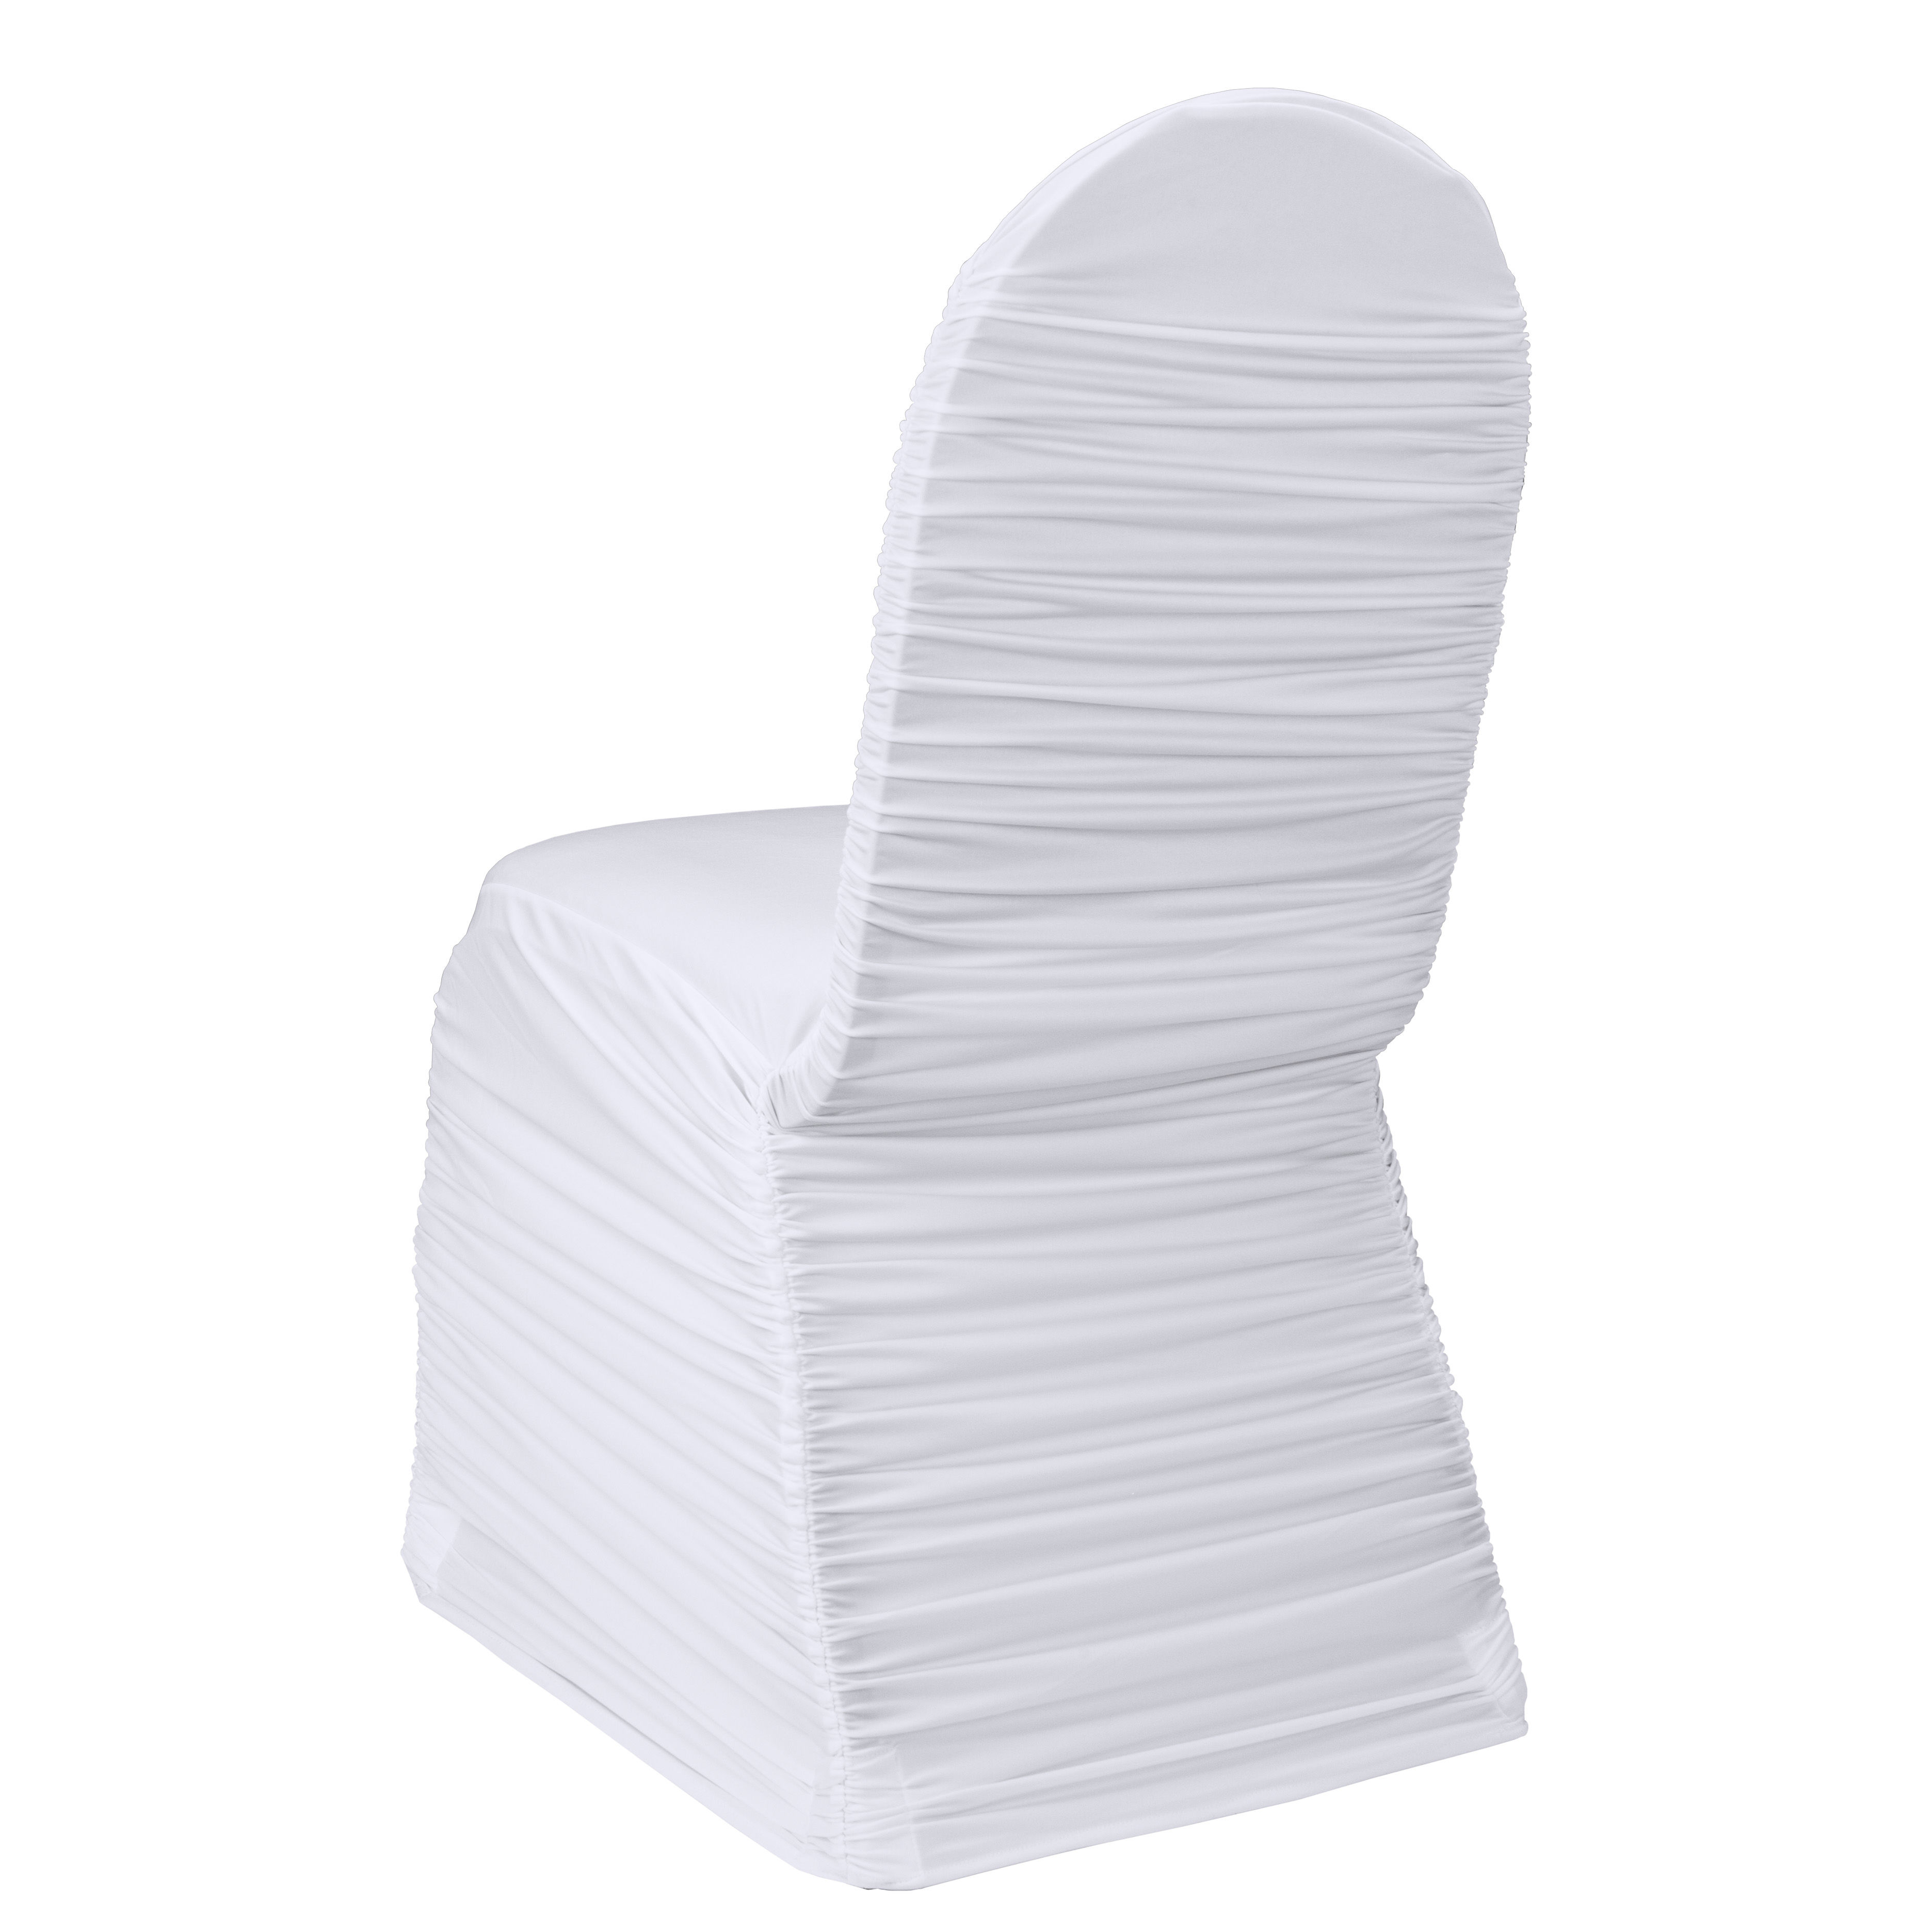 chair covers white linen water chairs for the lake ruched banquet cover by and linens